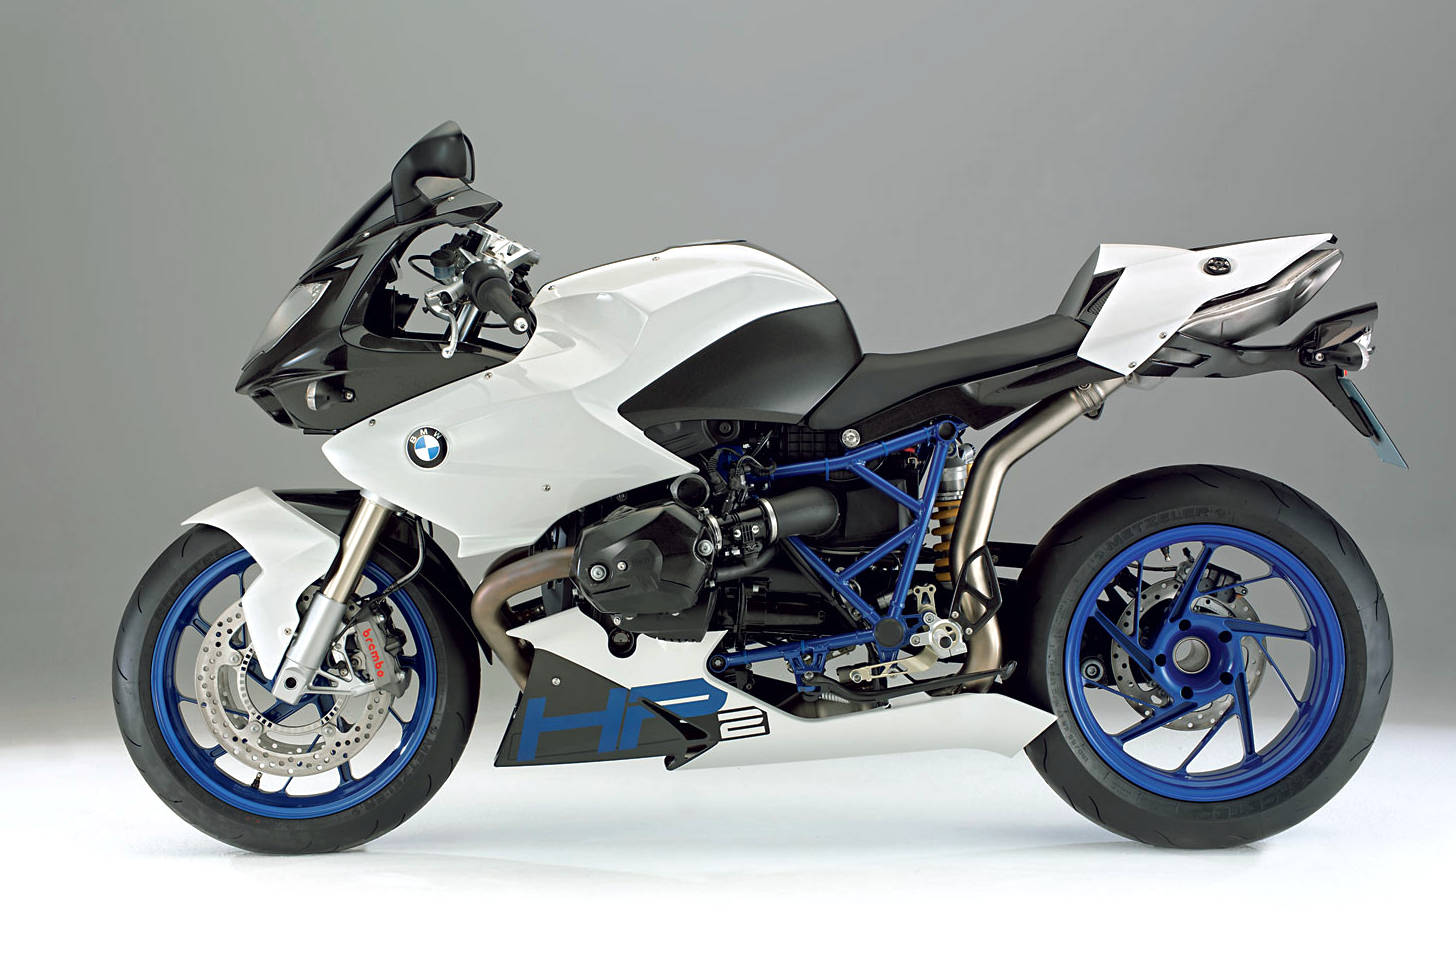 bmw preparing a new boxer sport bike motorcycle news editorials. Black Bedroom Furniture Sets. Home Design Ideas